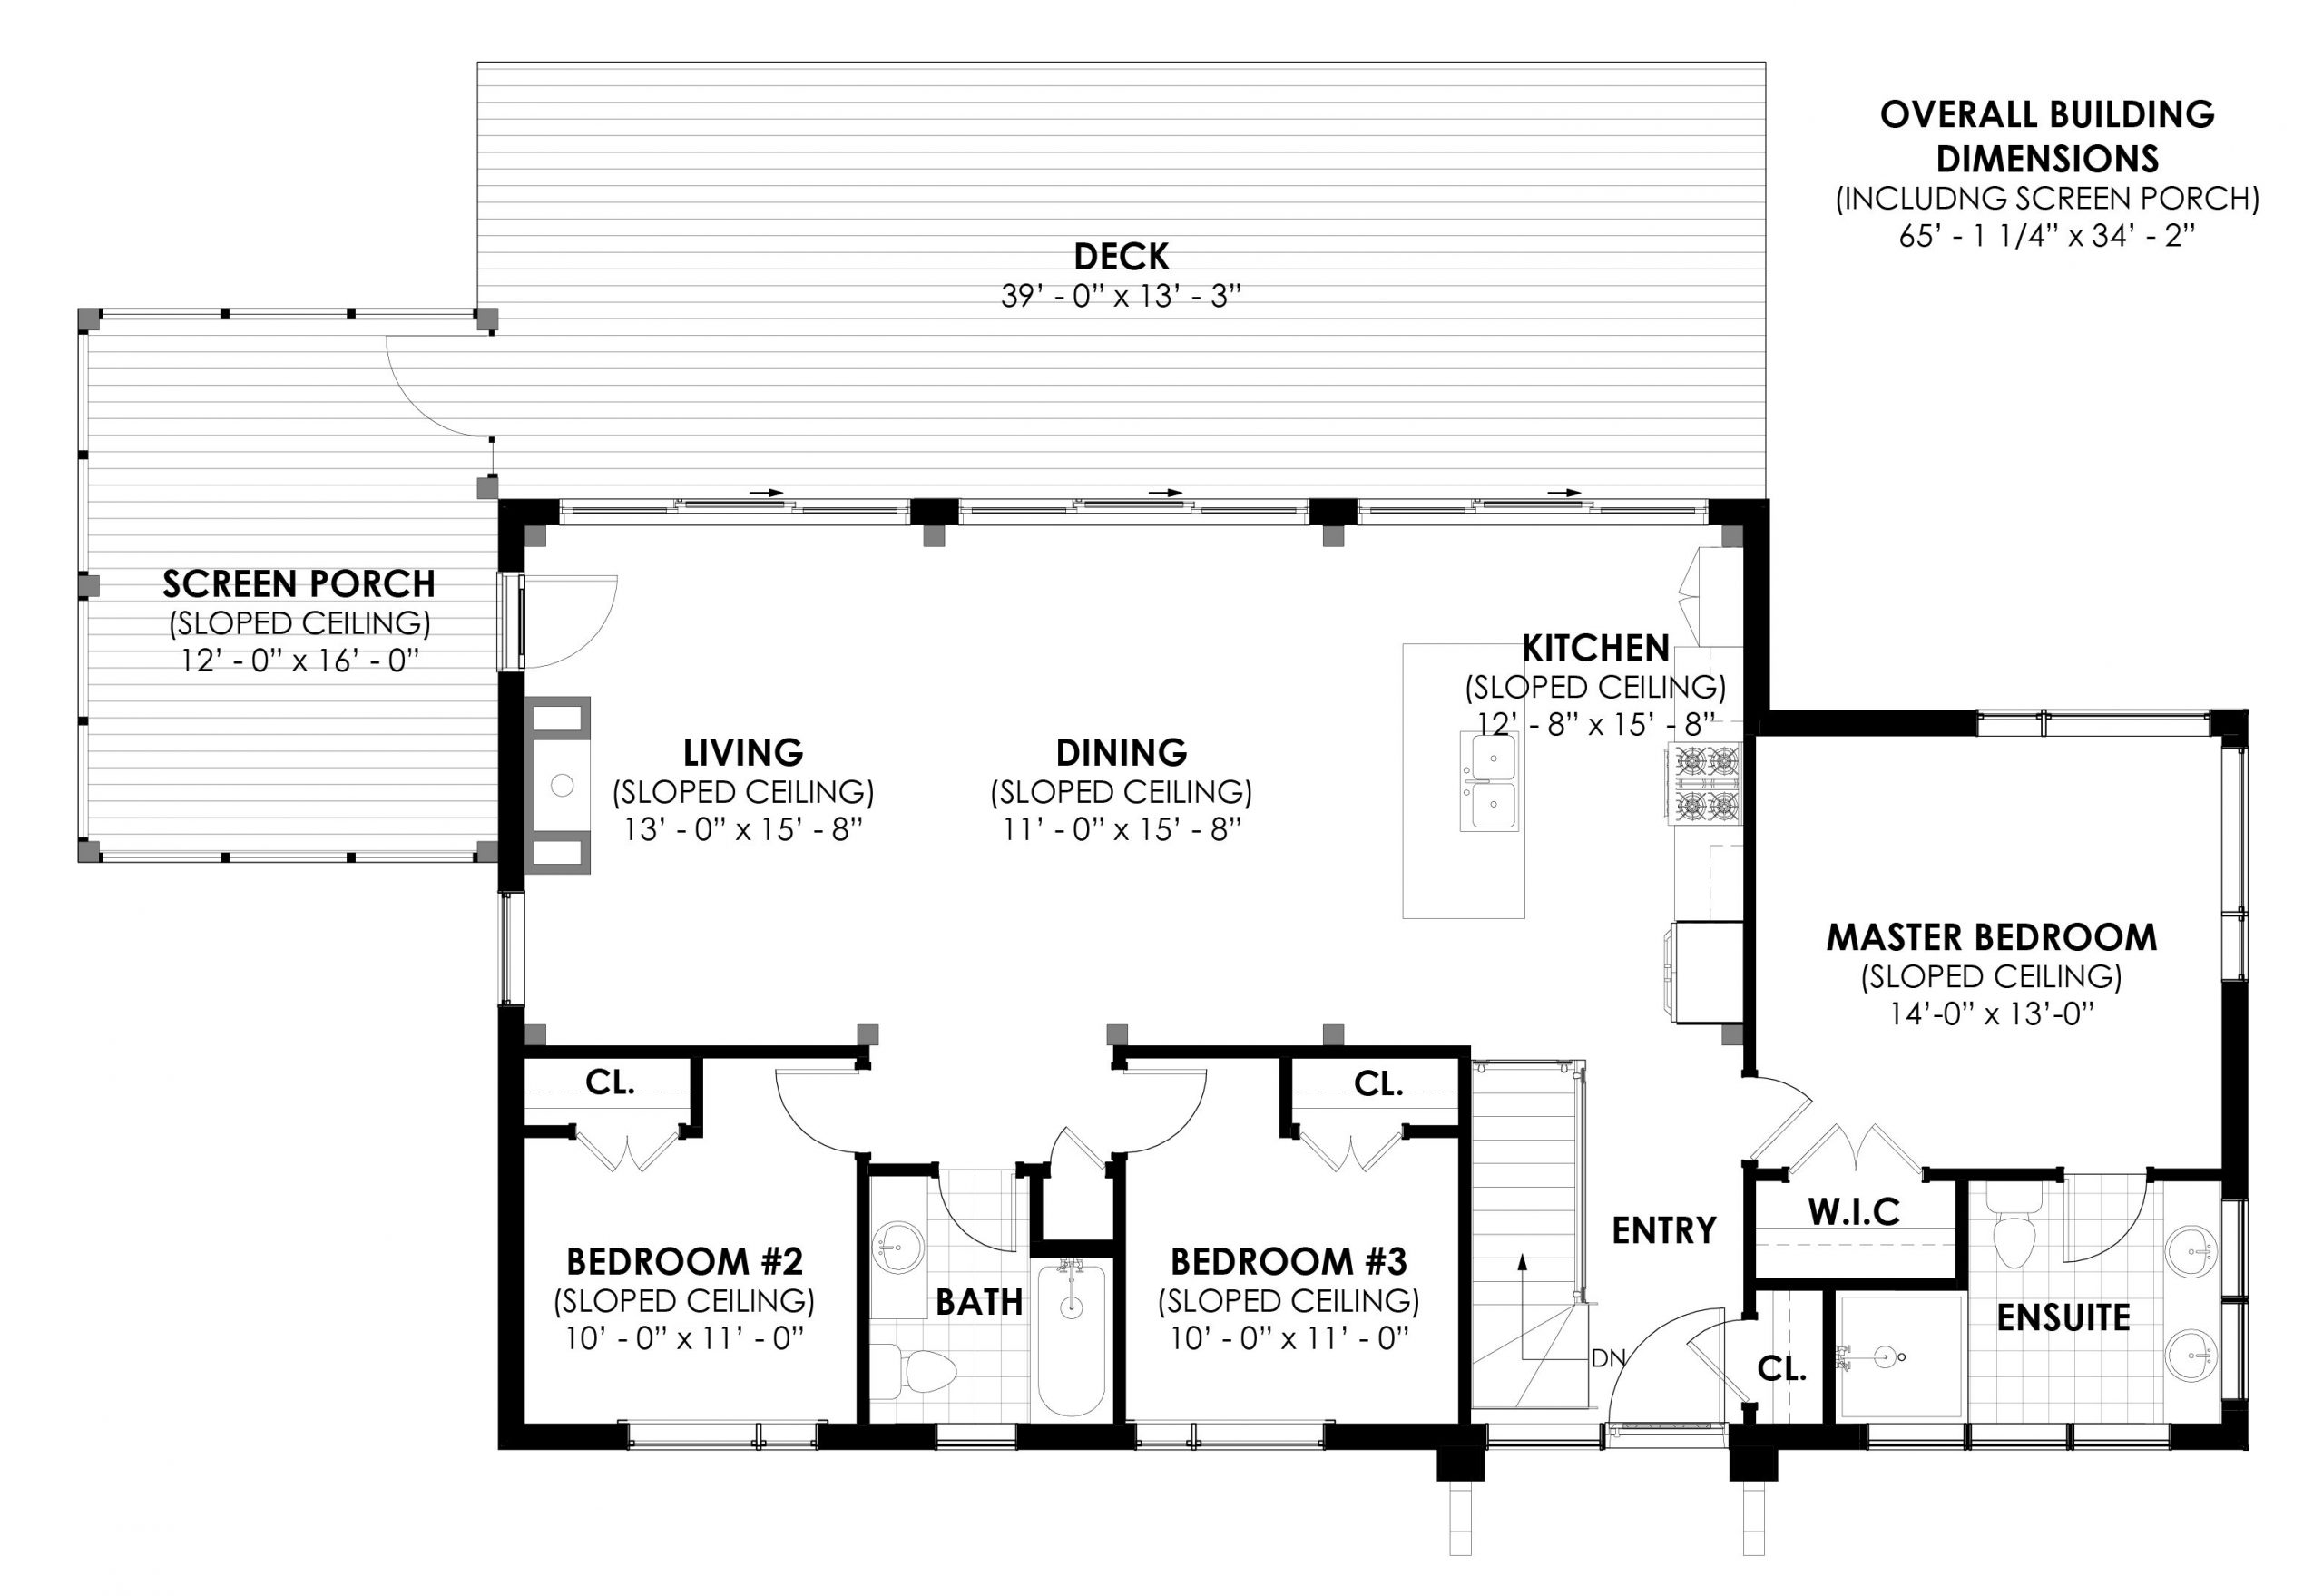 Normerica Timber Frames, House Plan, The Bayfield 3945, First Floor Layout